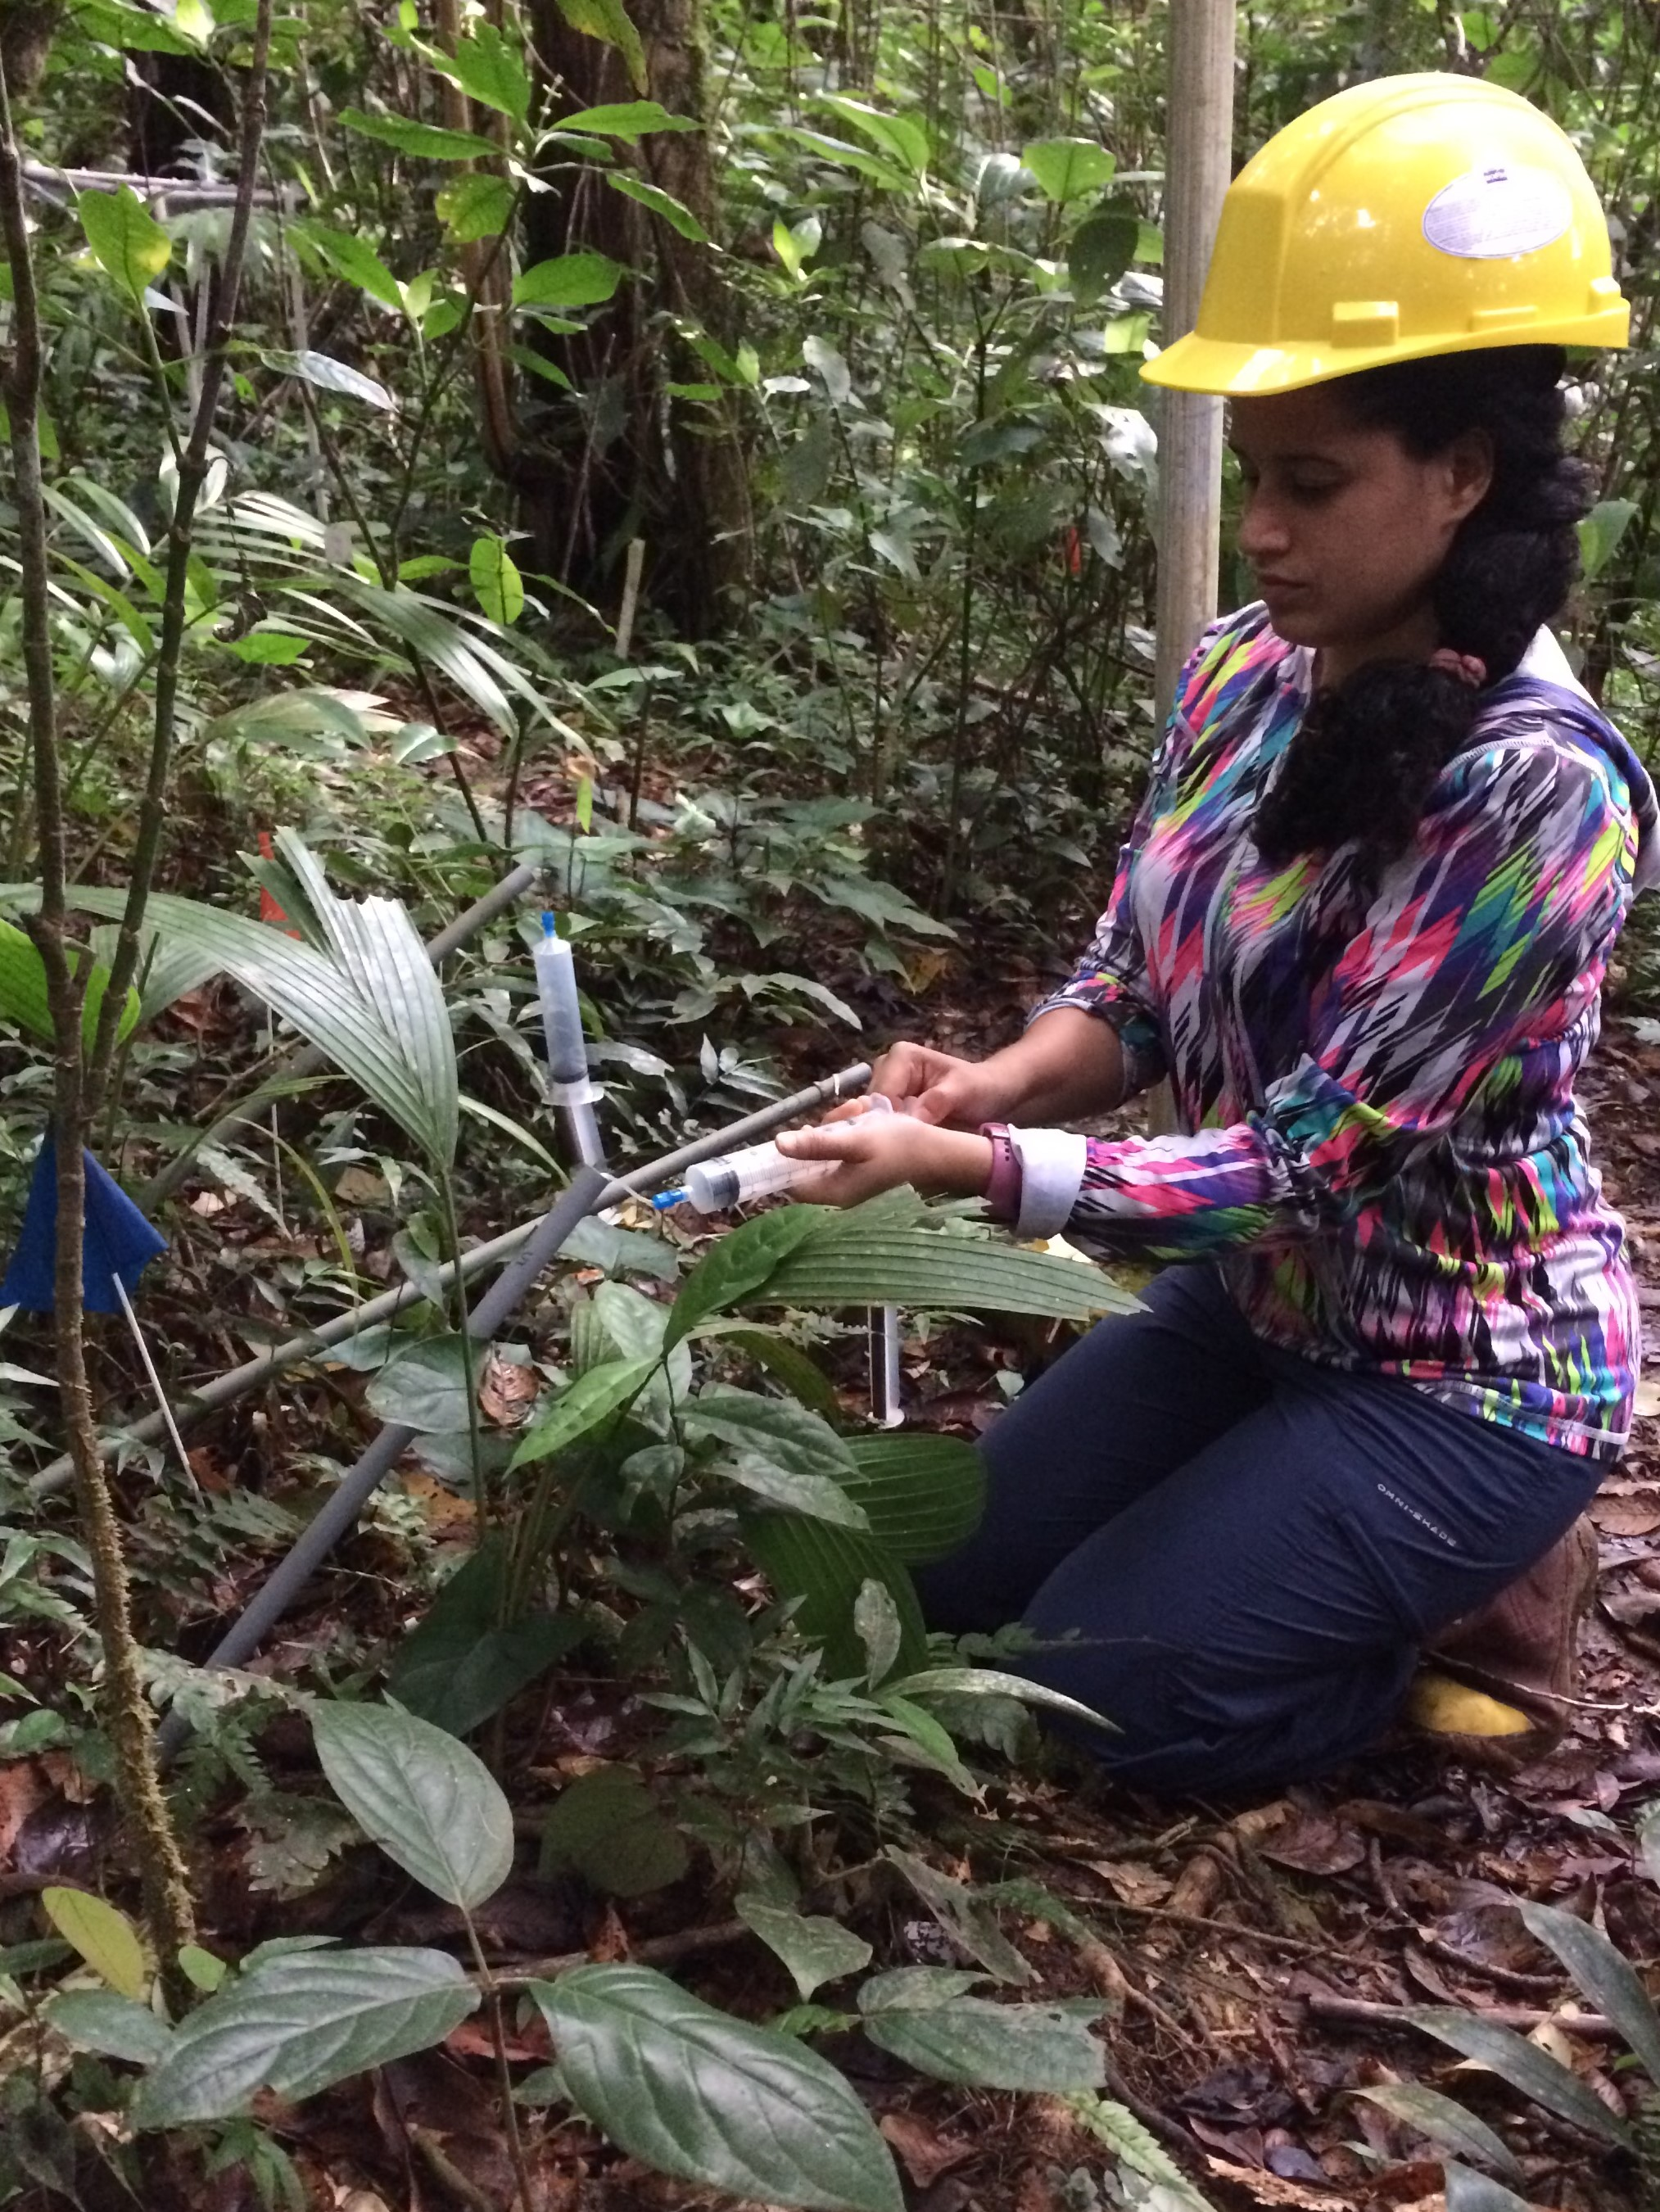 TRACE intern Tessaliz Quiles-Delgado is collecting soil pore water to analyze for nutrients.